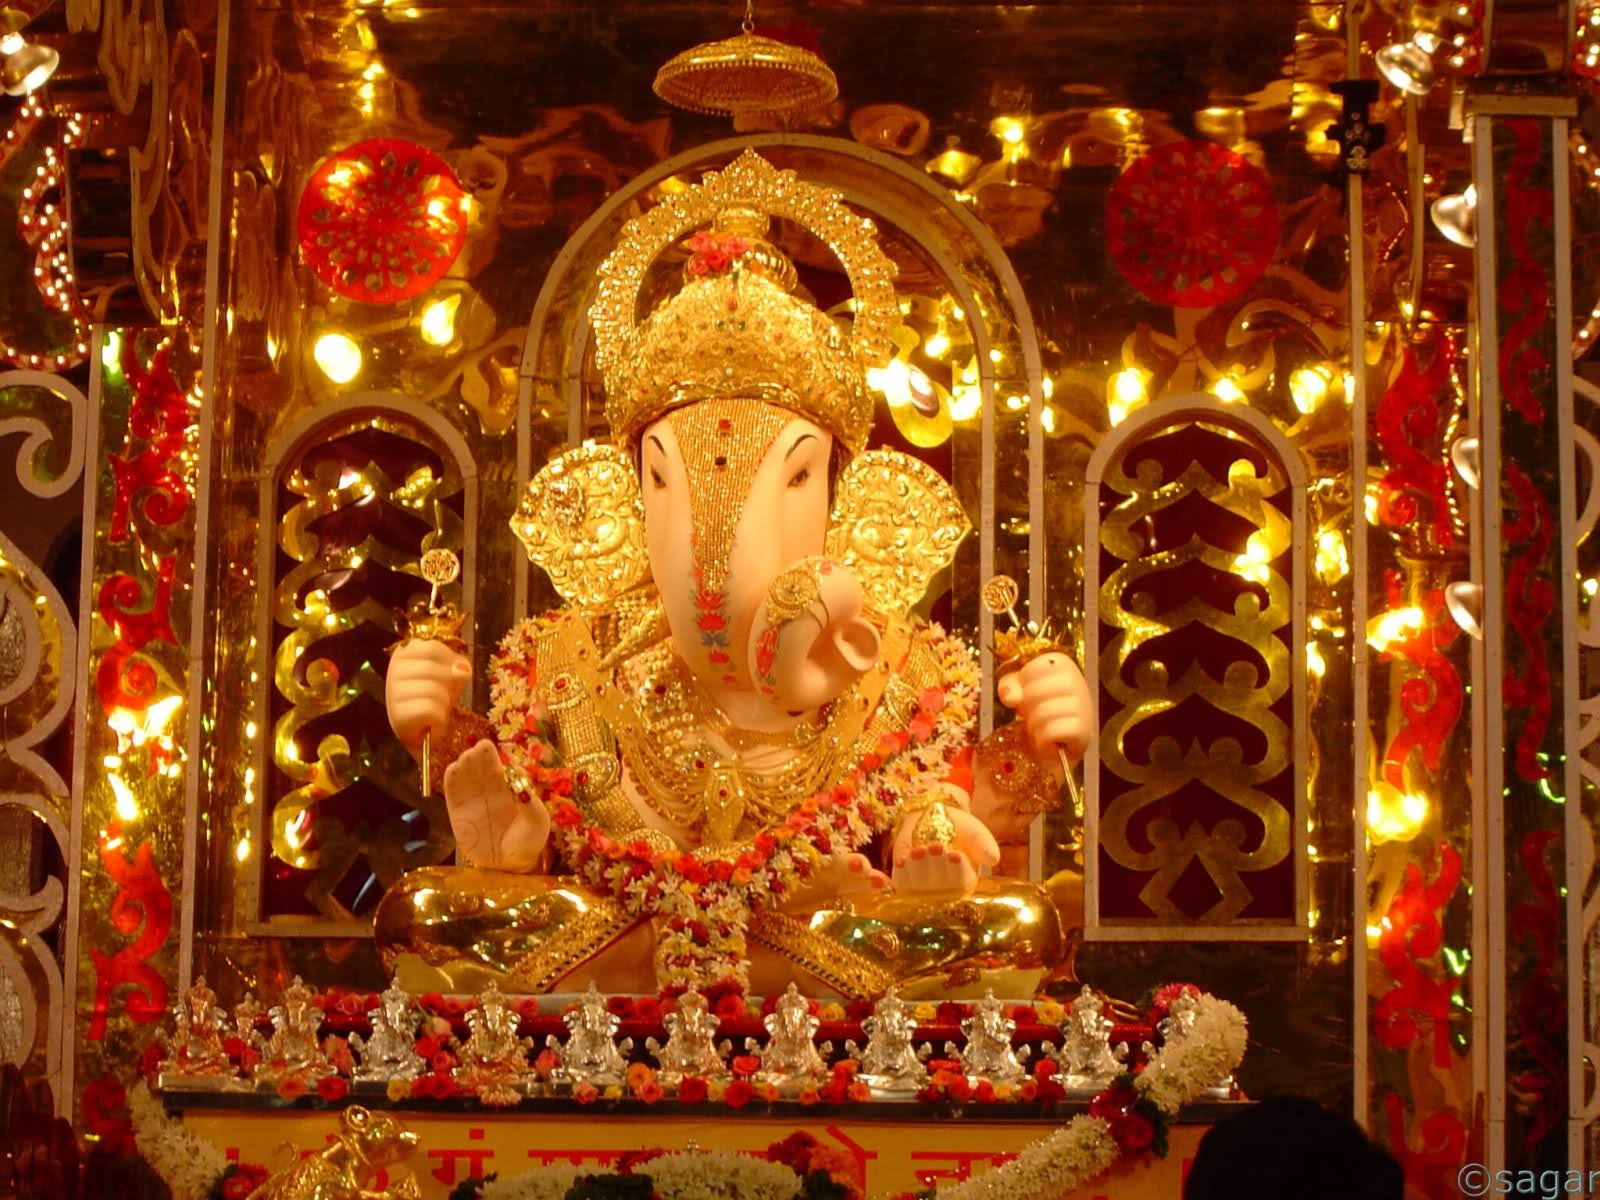 ganpati pandal decoration ideas, ganesh pendal decorations, photos